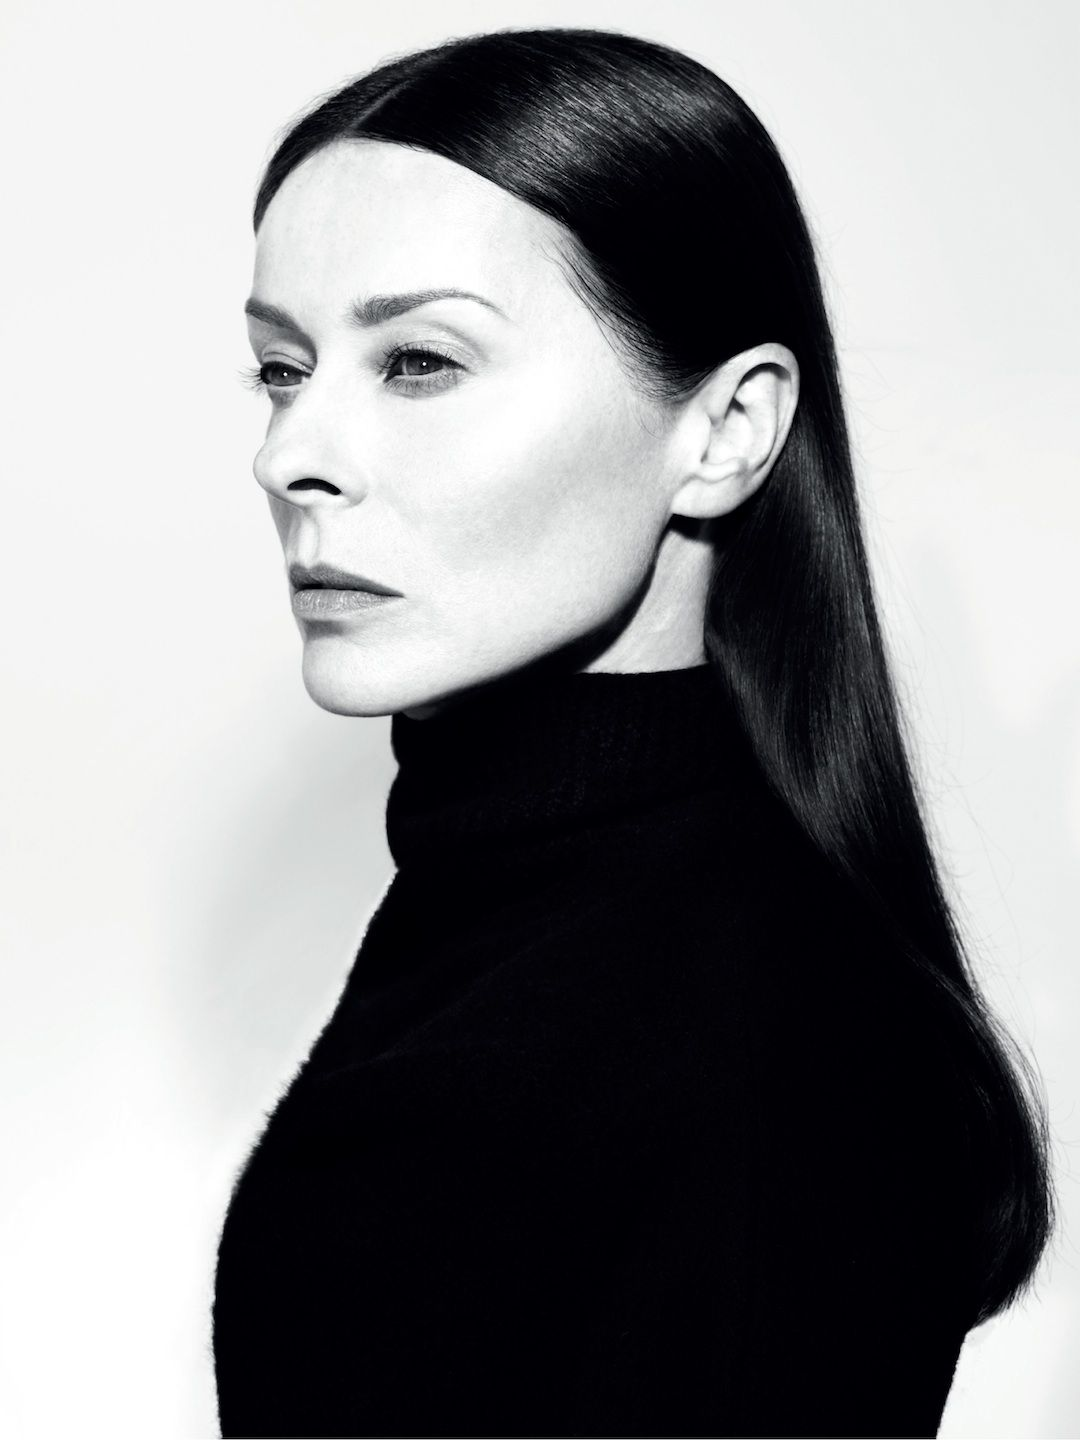 lisa stansfield - photo #15